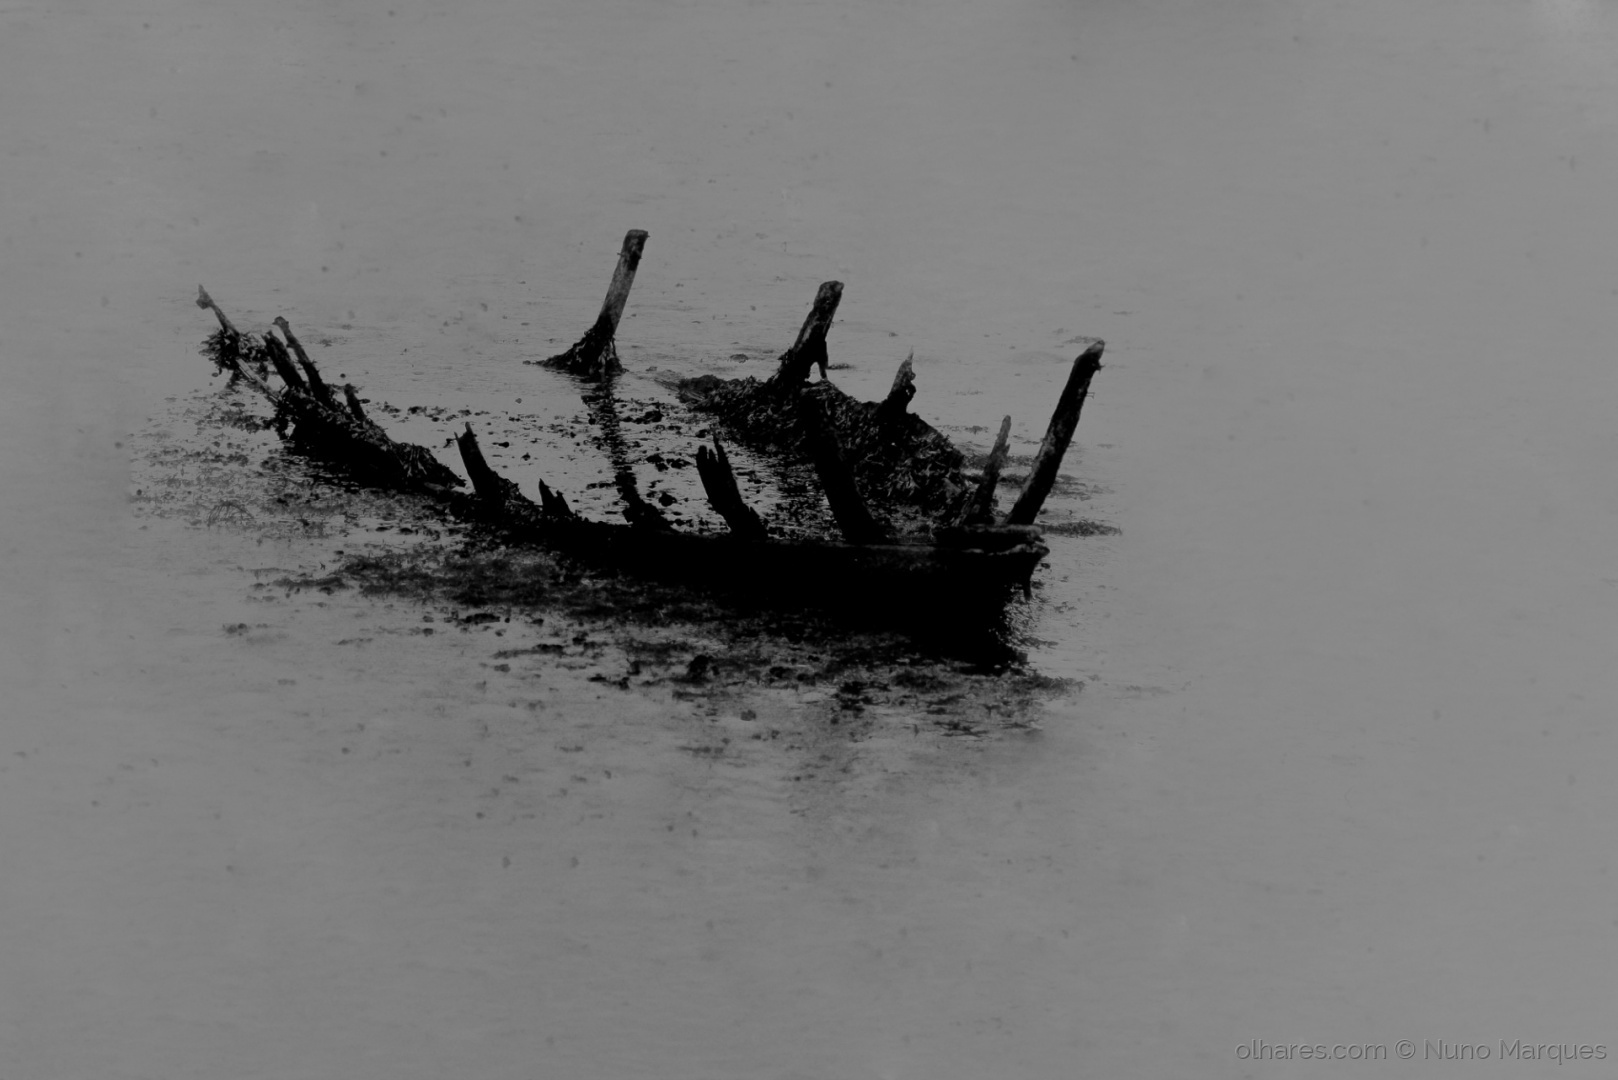 Abstrato/Forgotten wreck